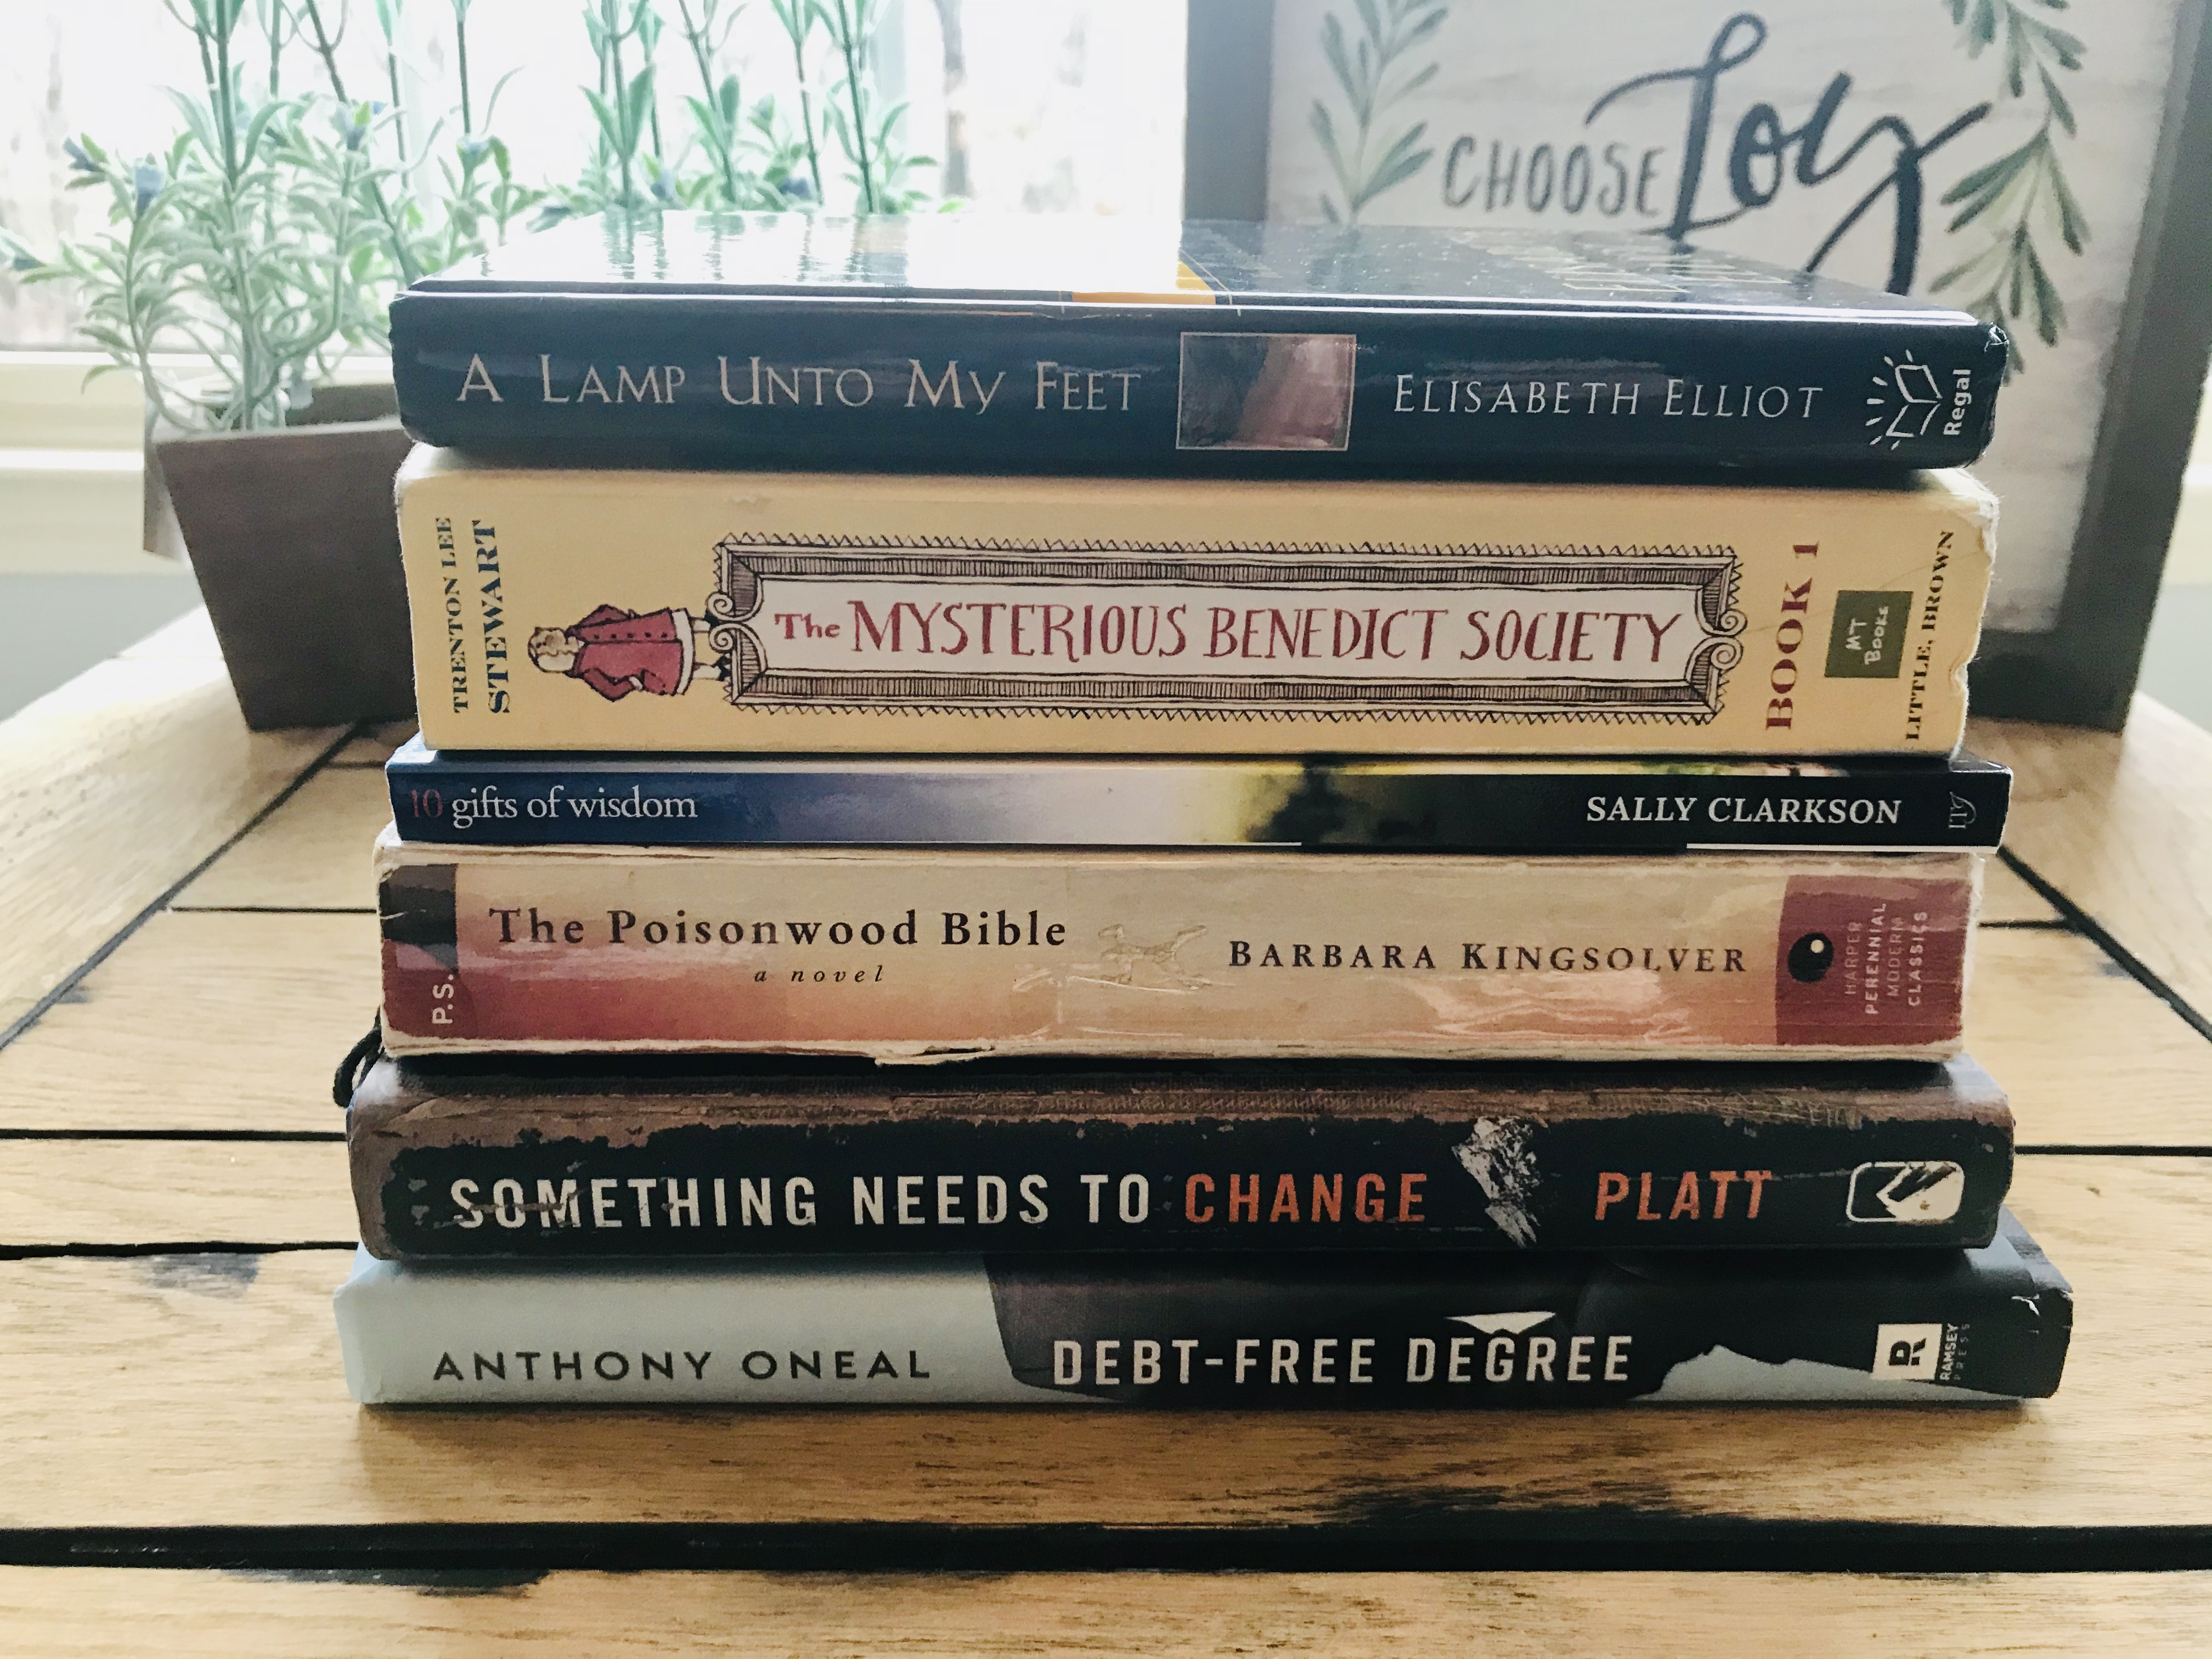 My February Book Stack